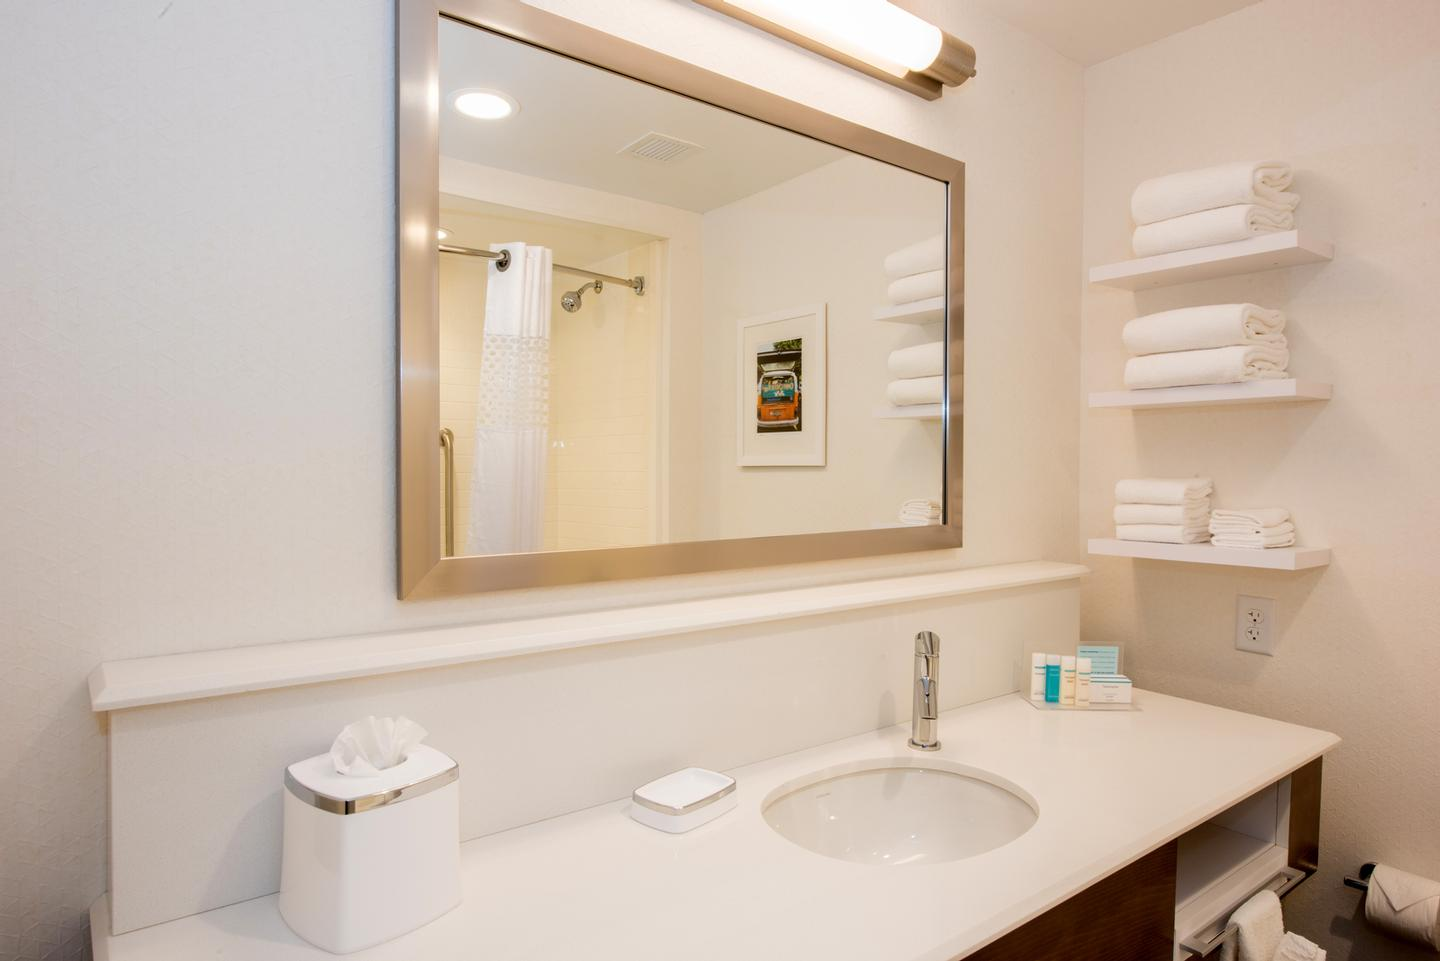 Bright White Bathrooms With Lot Of Counter Space 3 of 9